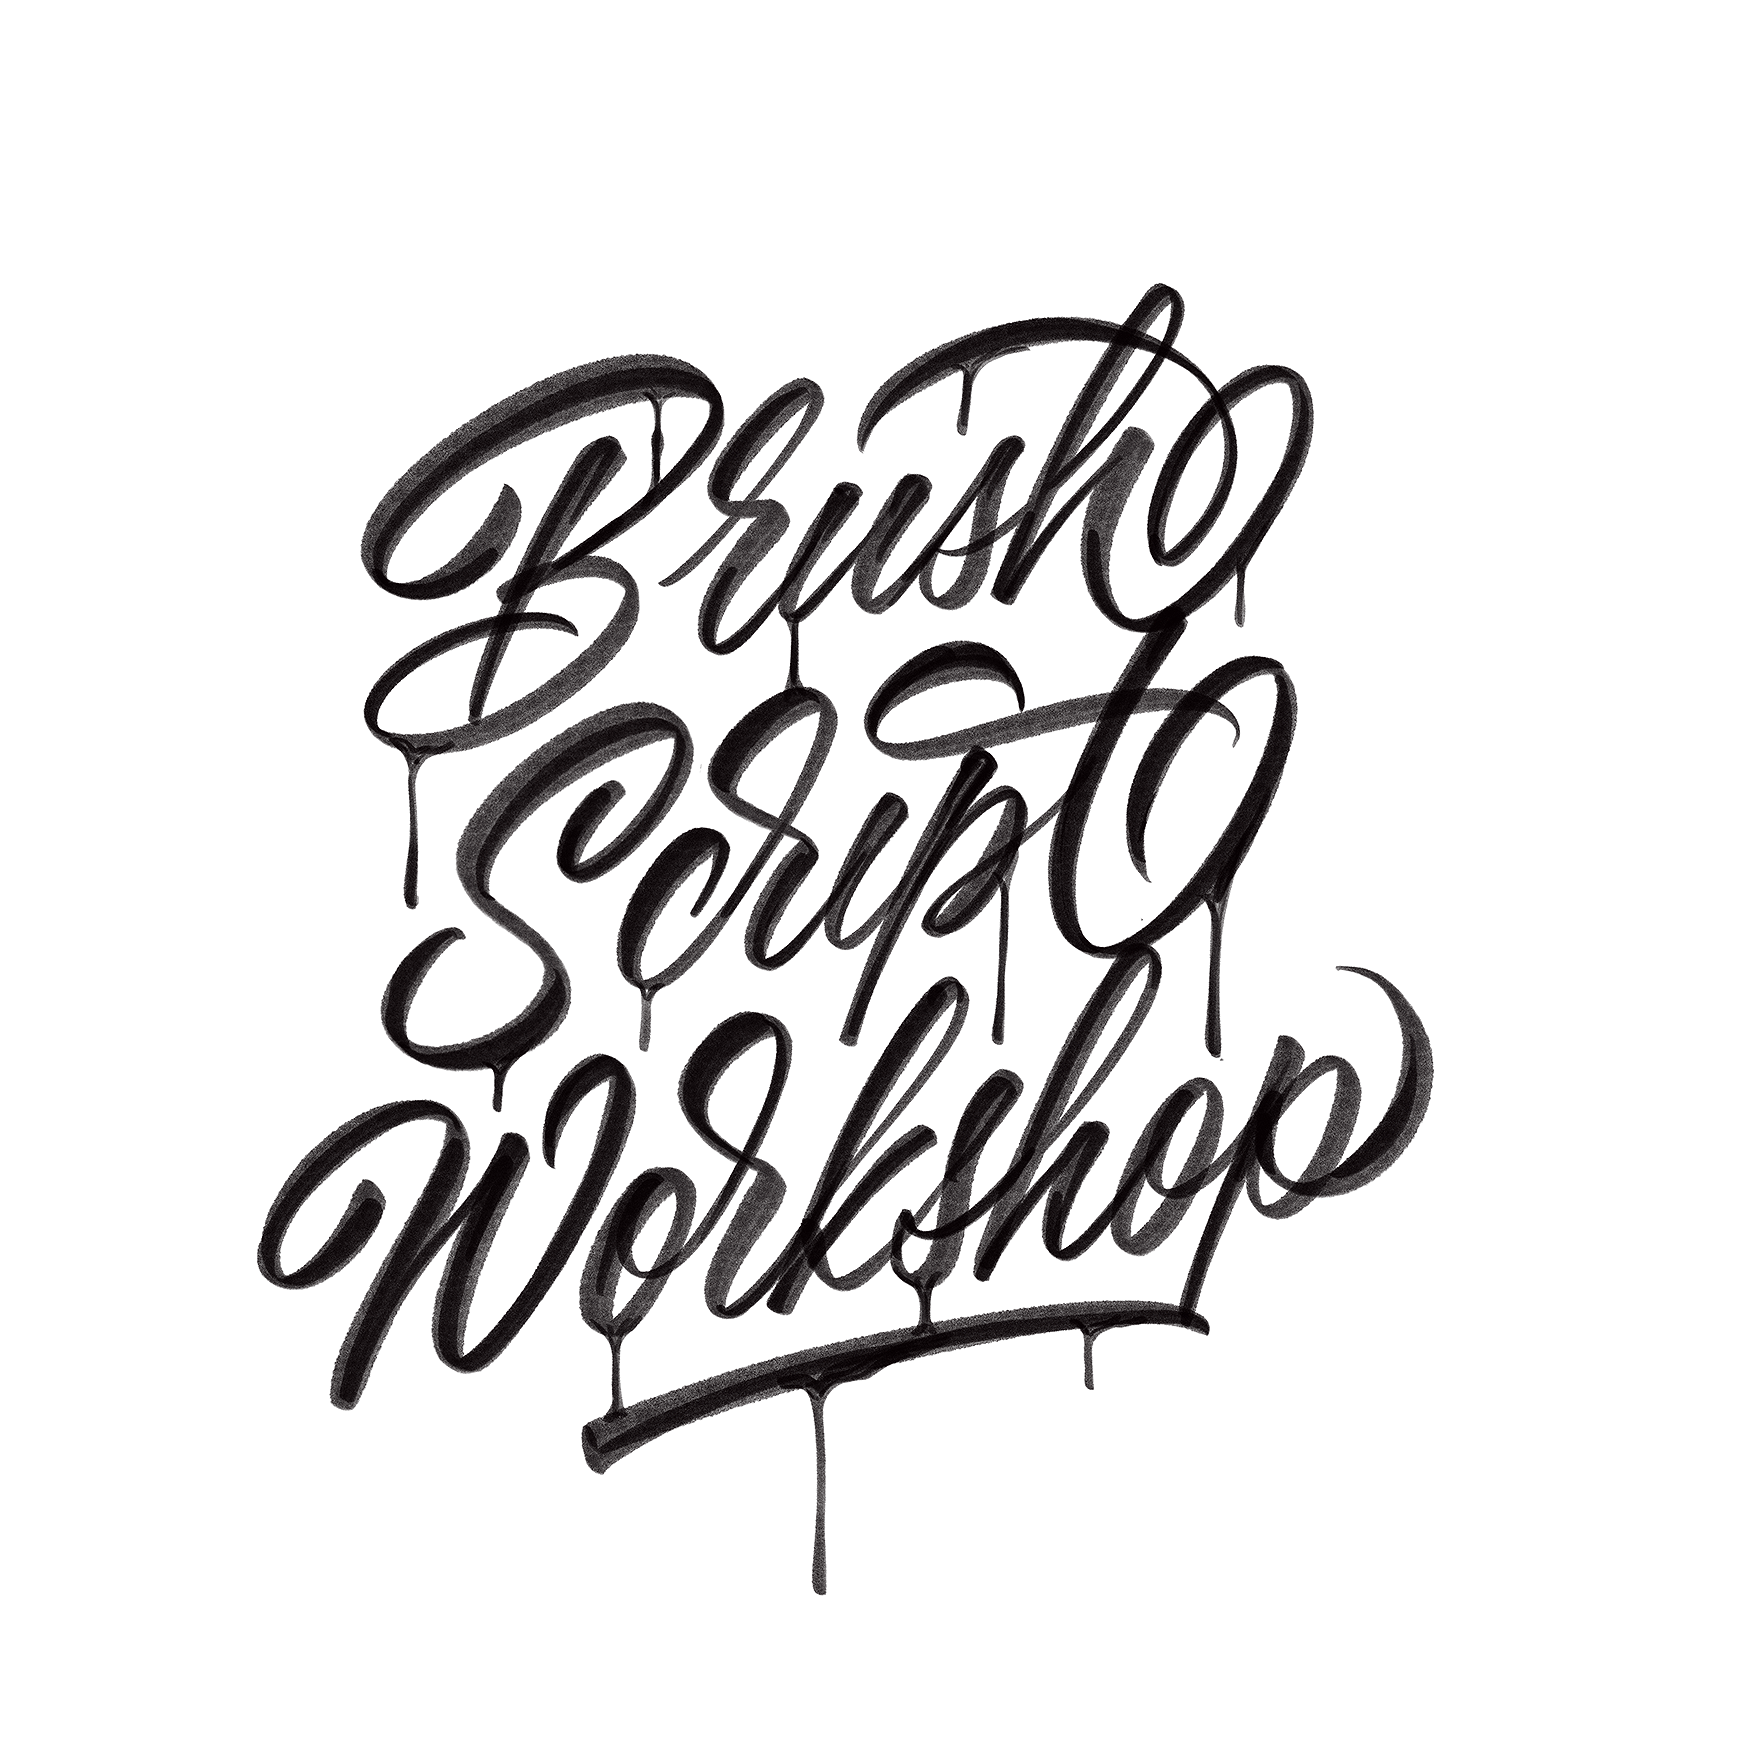 BrushScriptLettering_MichaelMoodie_2019.png